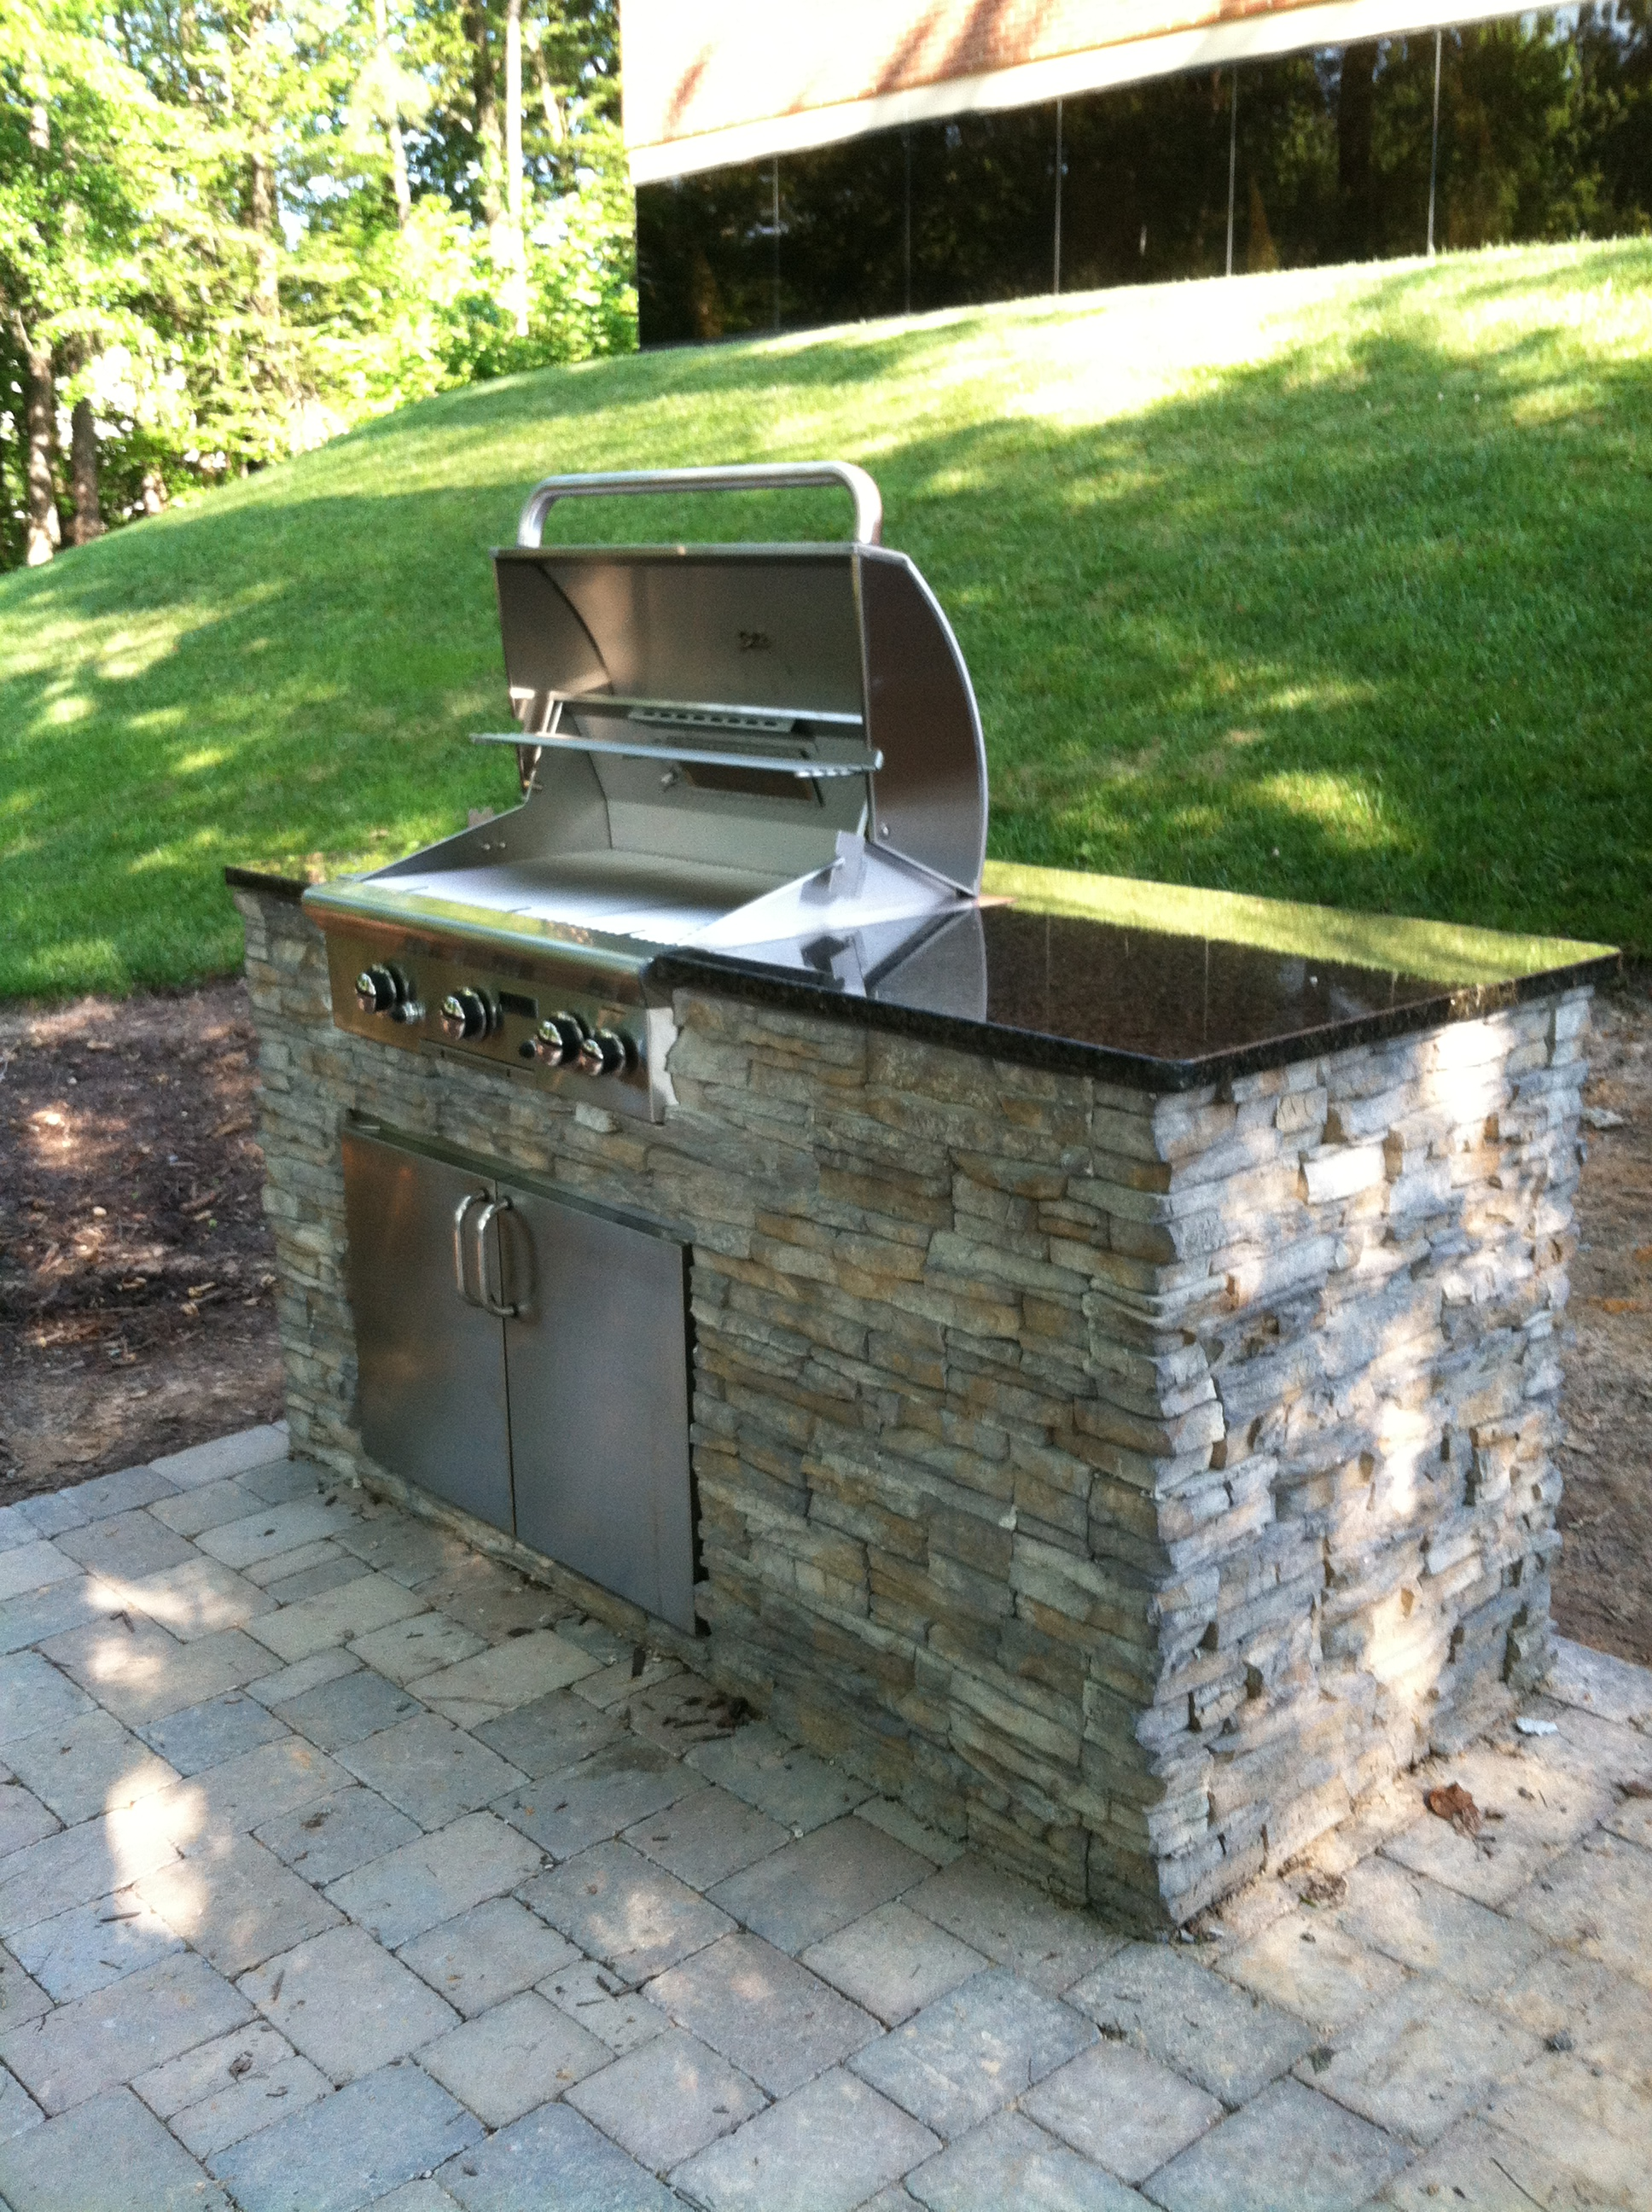 31 Outdoor kitchen on a budget on Patio Kitchen id=12419